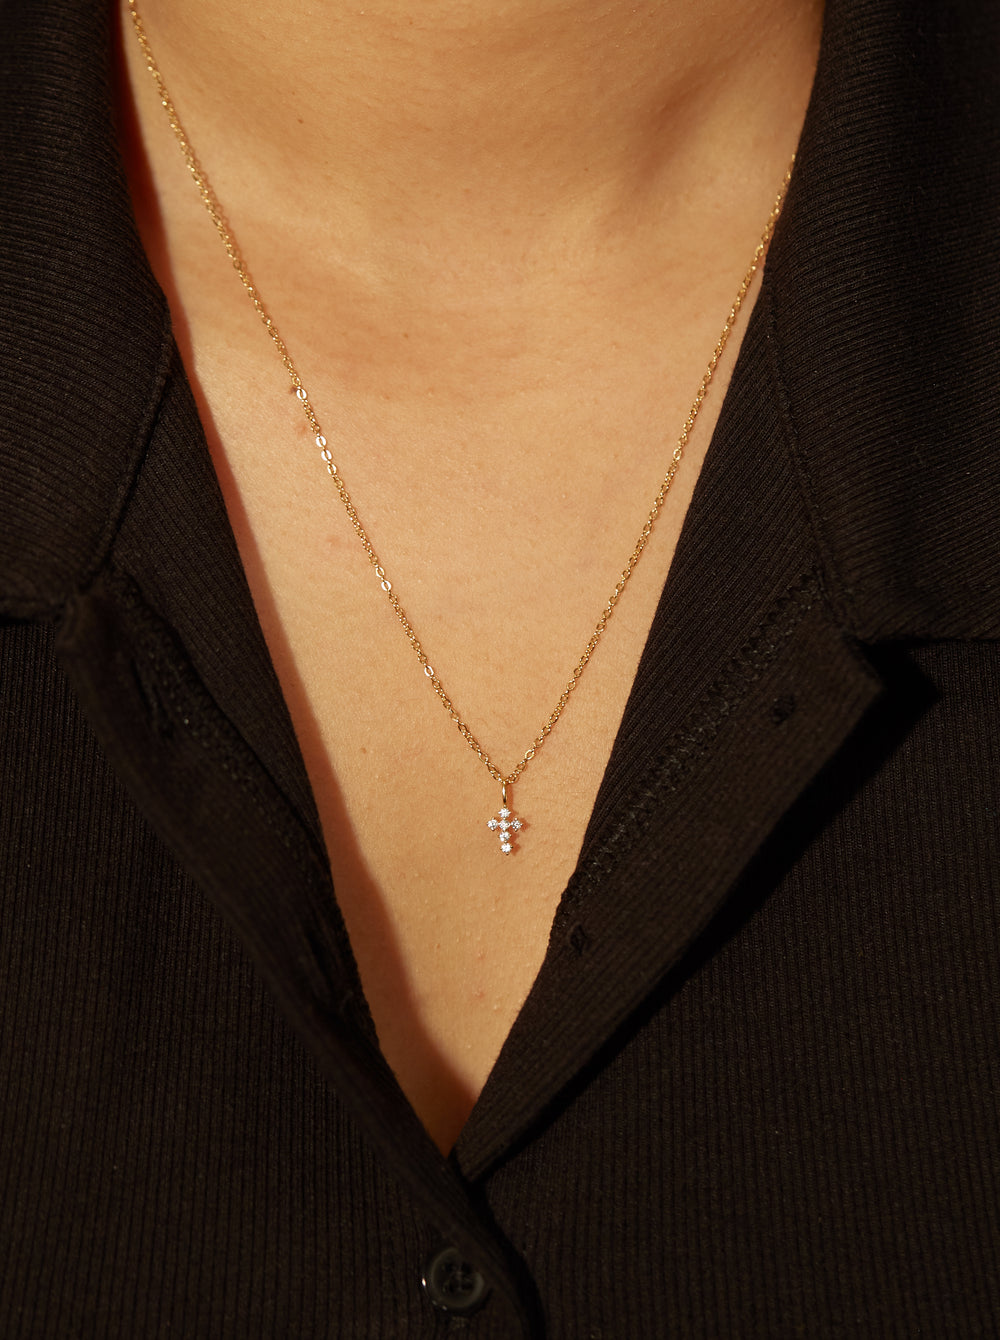 THE TINY PAVE' CROSS NECKLACE